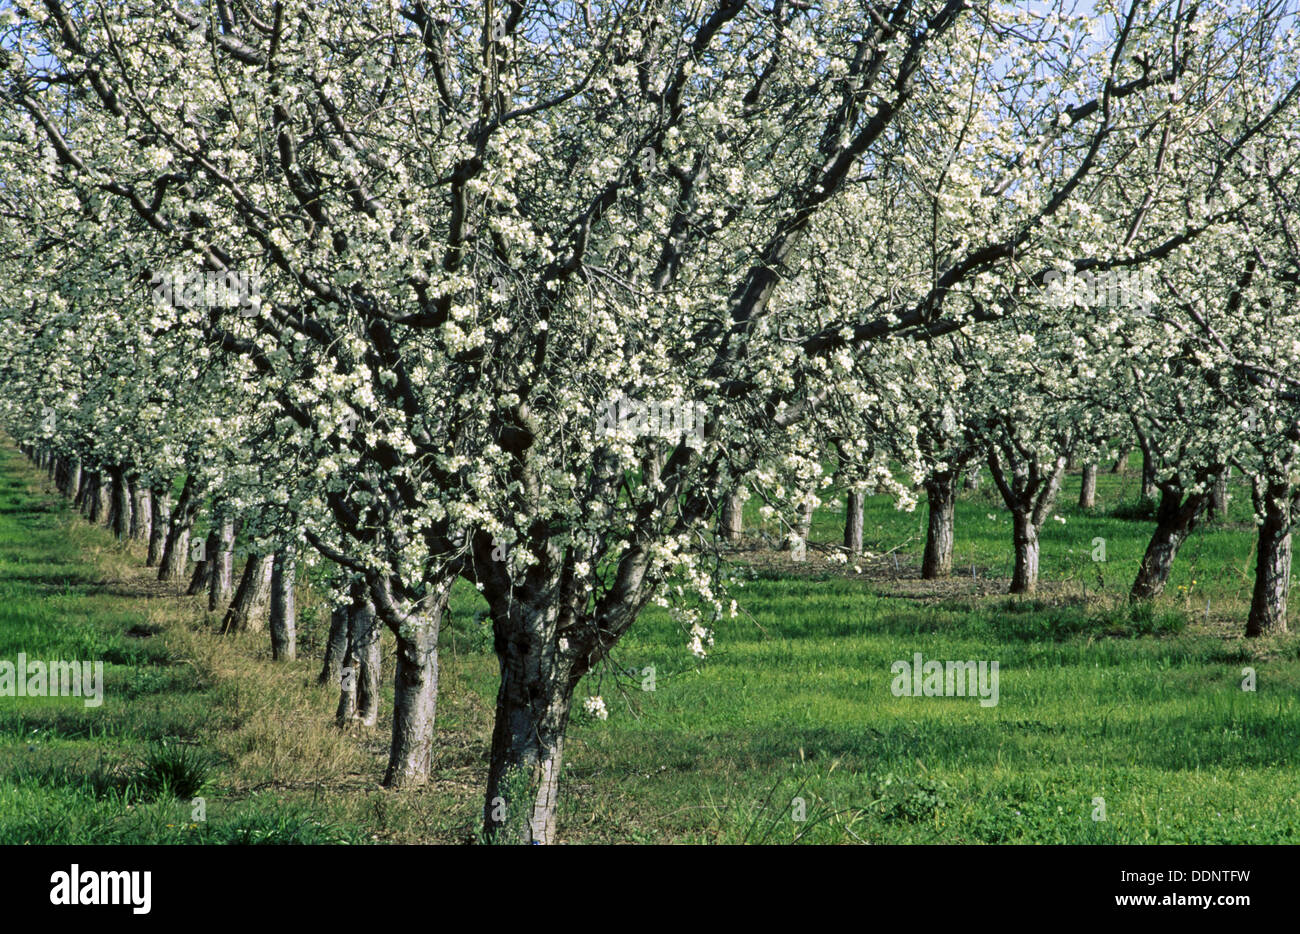 Prune orchard spring bloom yolo county california usa stock photo royalty free image - Spring trimming orchard trees healthy ...